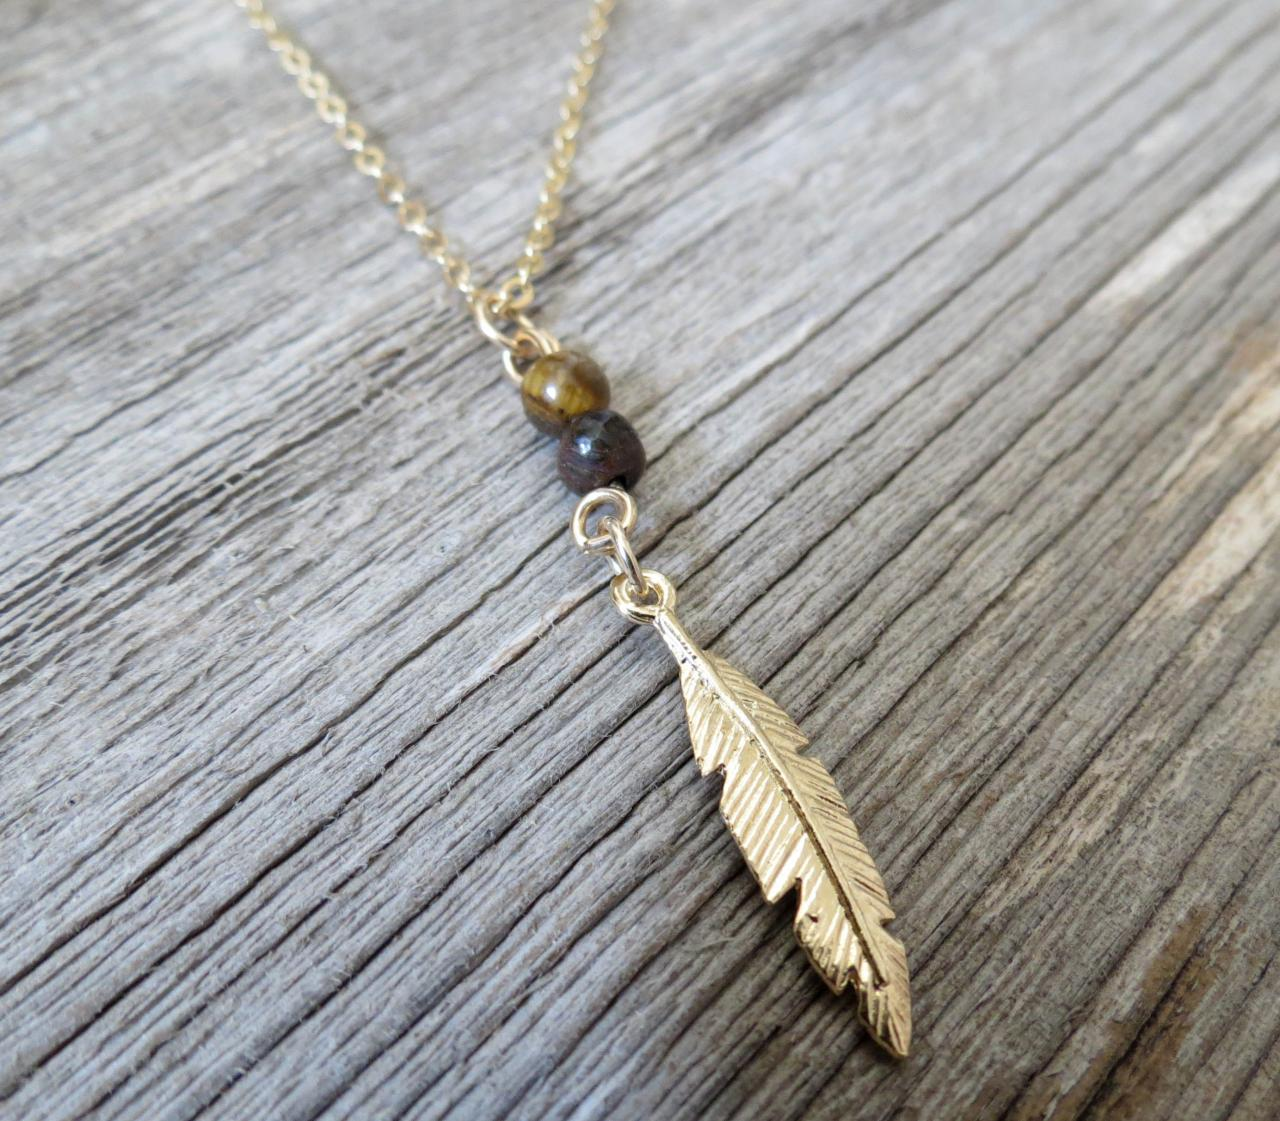 Men's Necklace - Men's Feather Necklace - Men's Gold Necklace - Mens Jewelry - Necklaces For Men - Jewelry For Men - Gift for Him